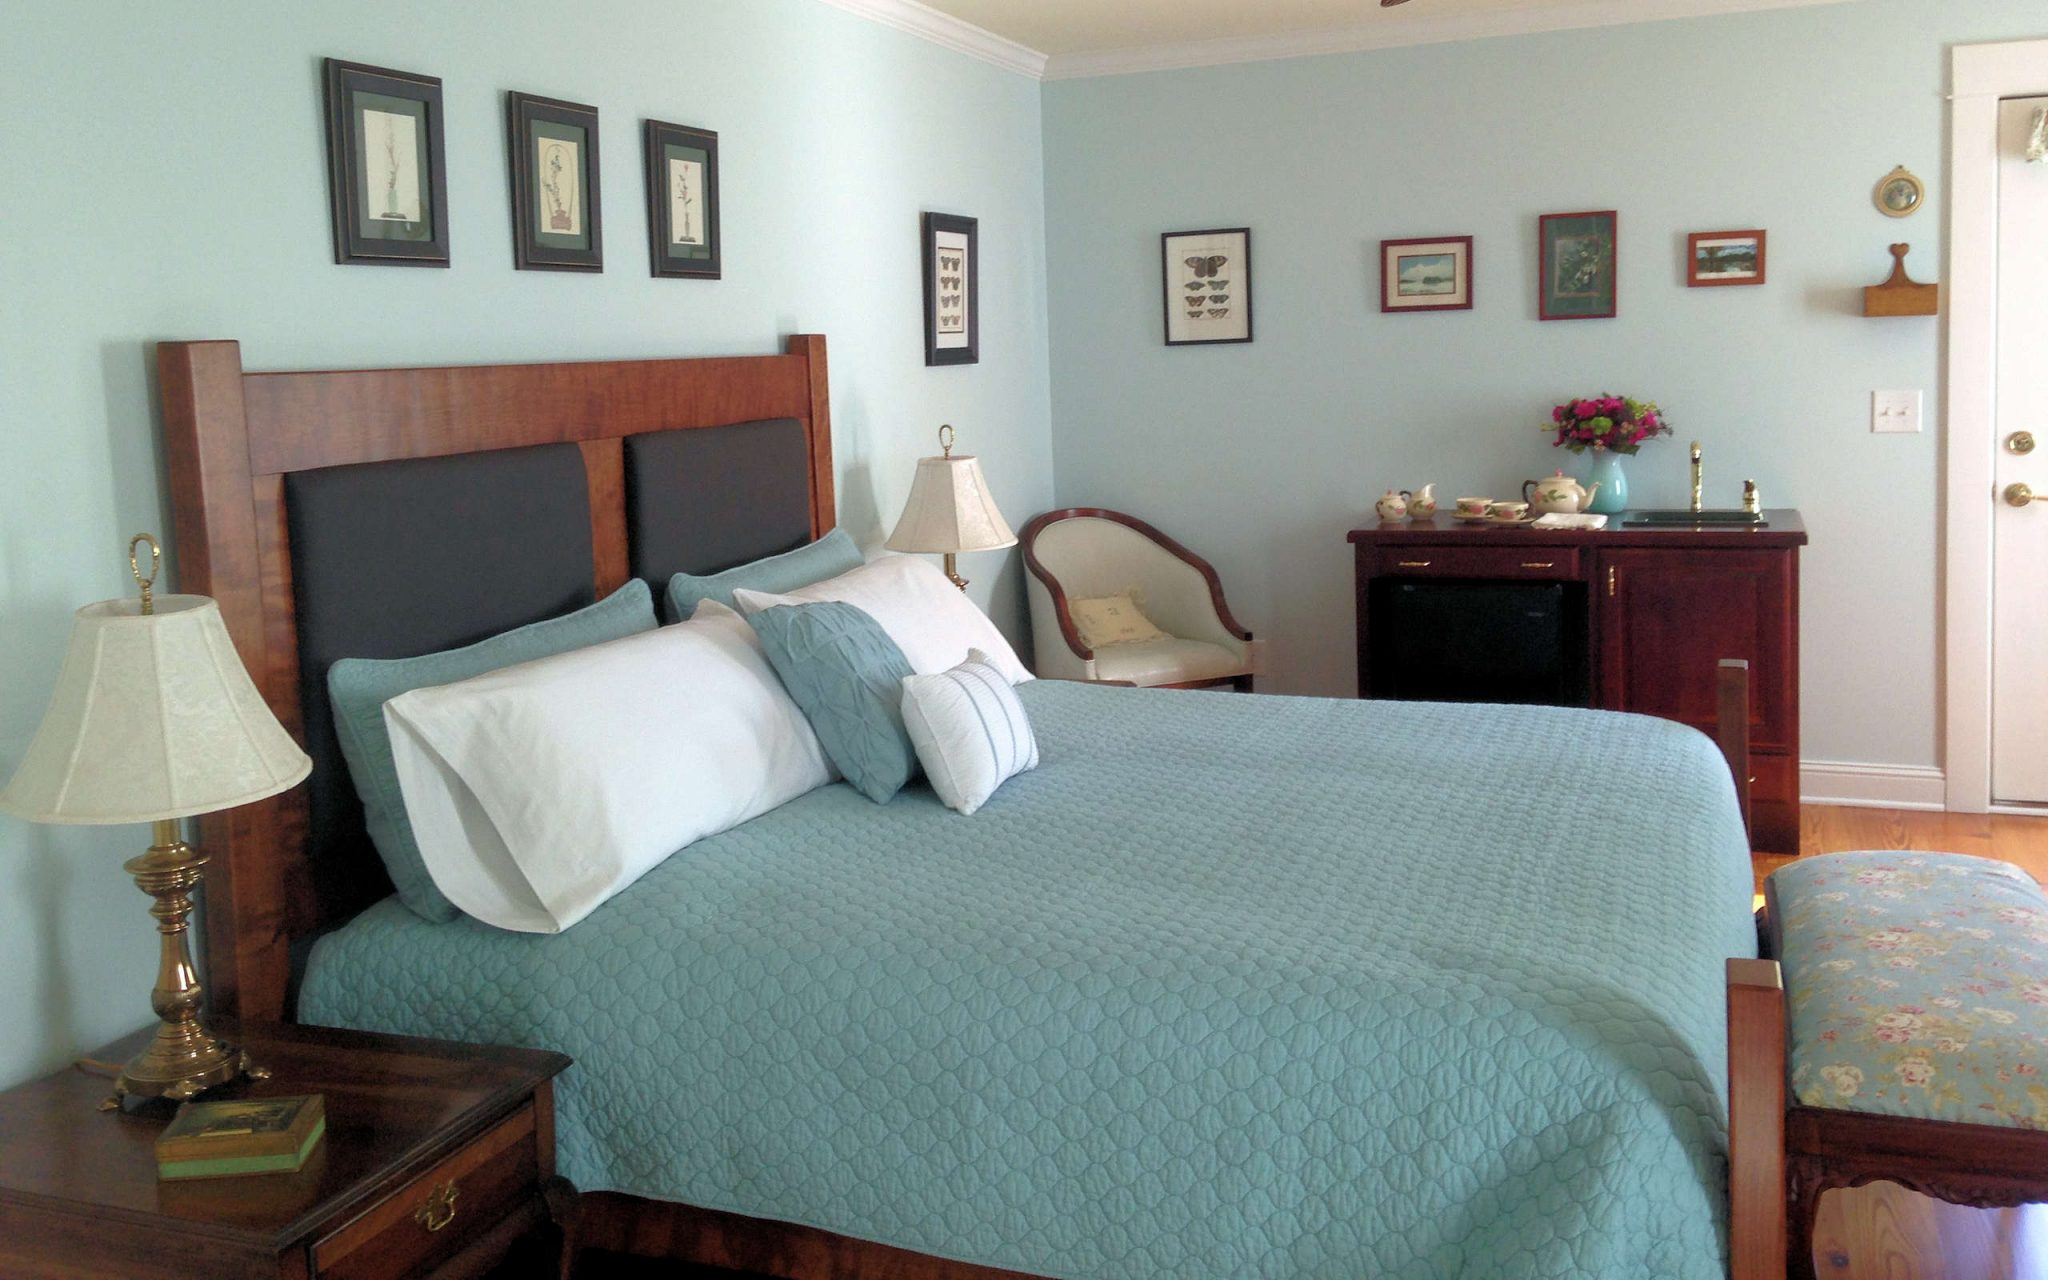 River Dell Bed & Breakfast Suite in Luray VA